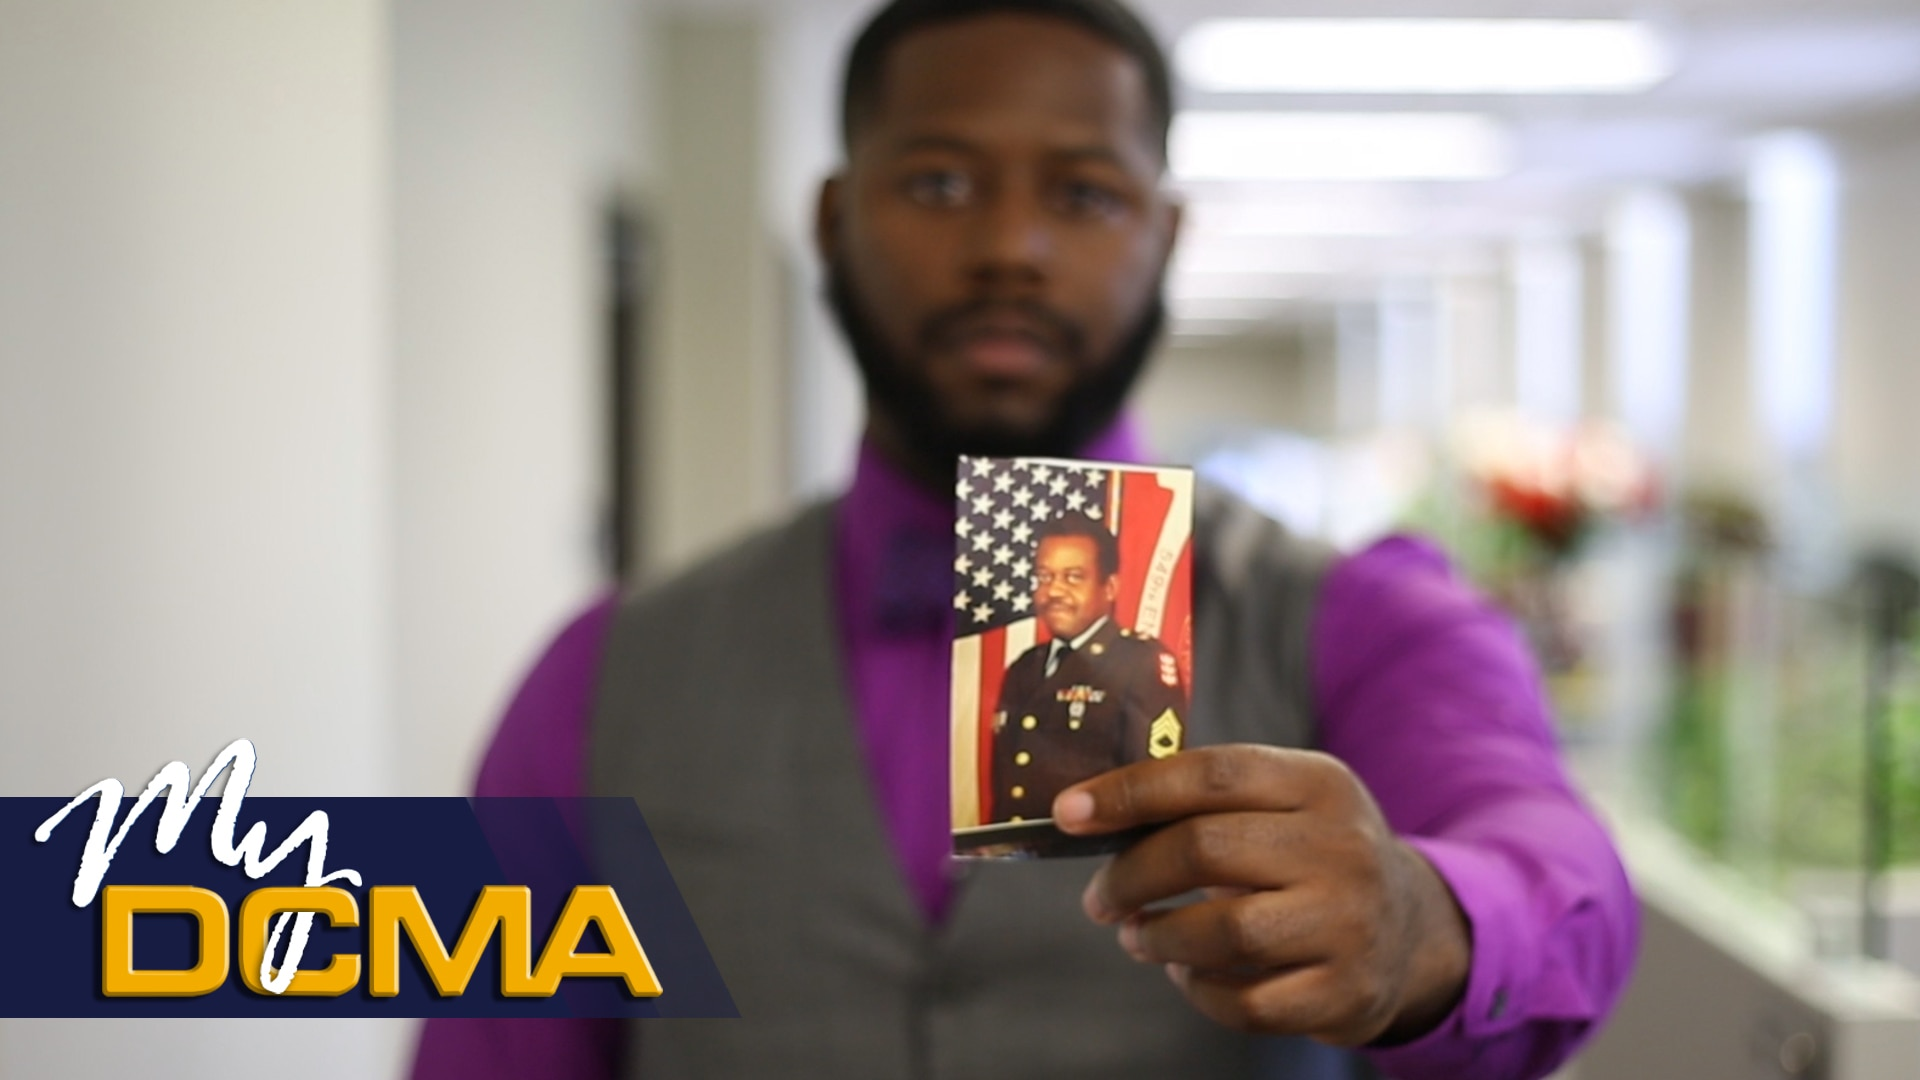 Man holds photo of another man in uniform.